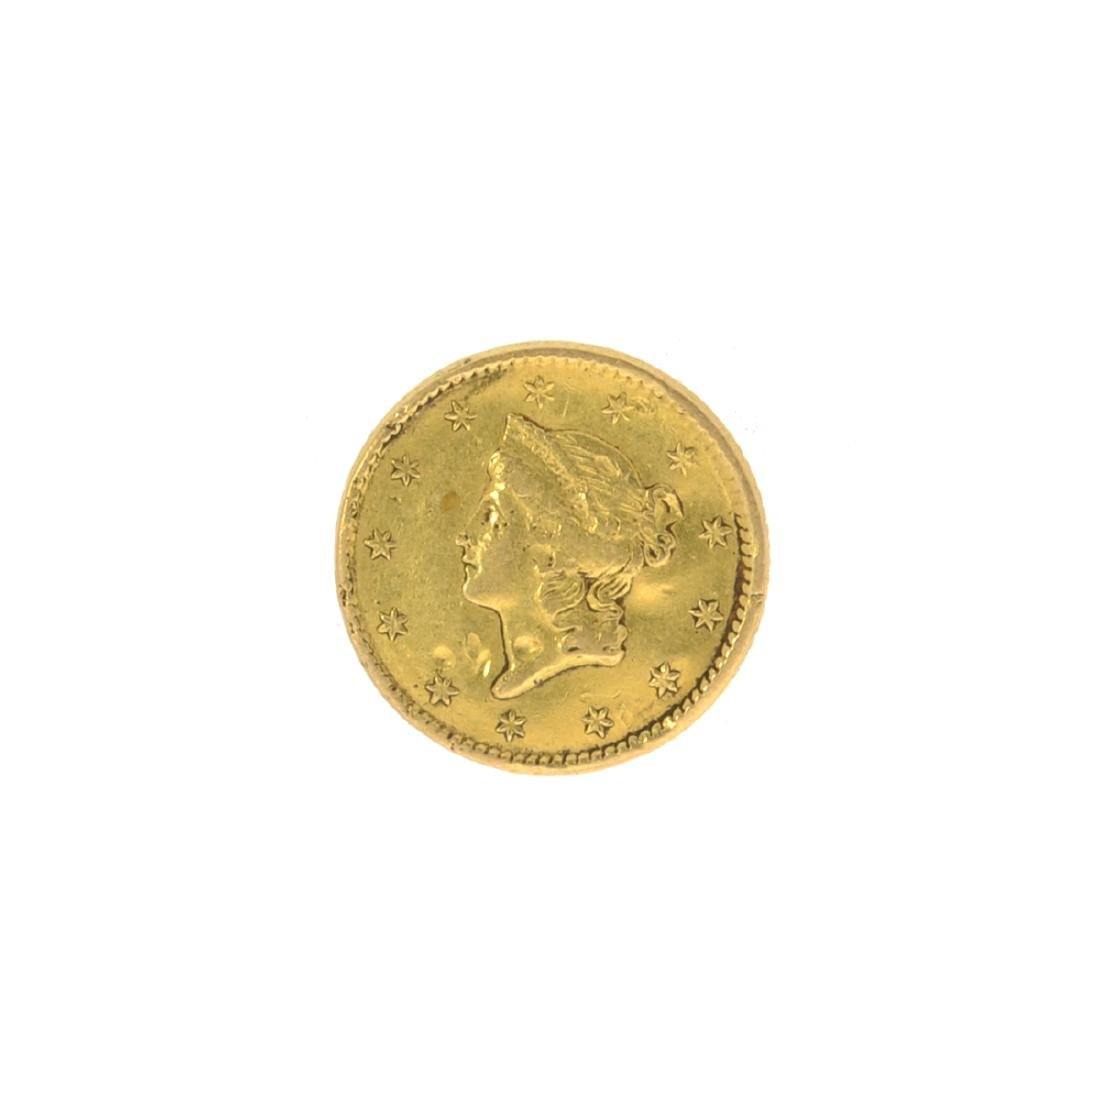 *1850 $1 U.S. Liberty Head Gold Coin (JG N)